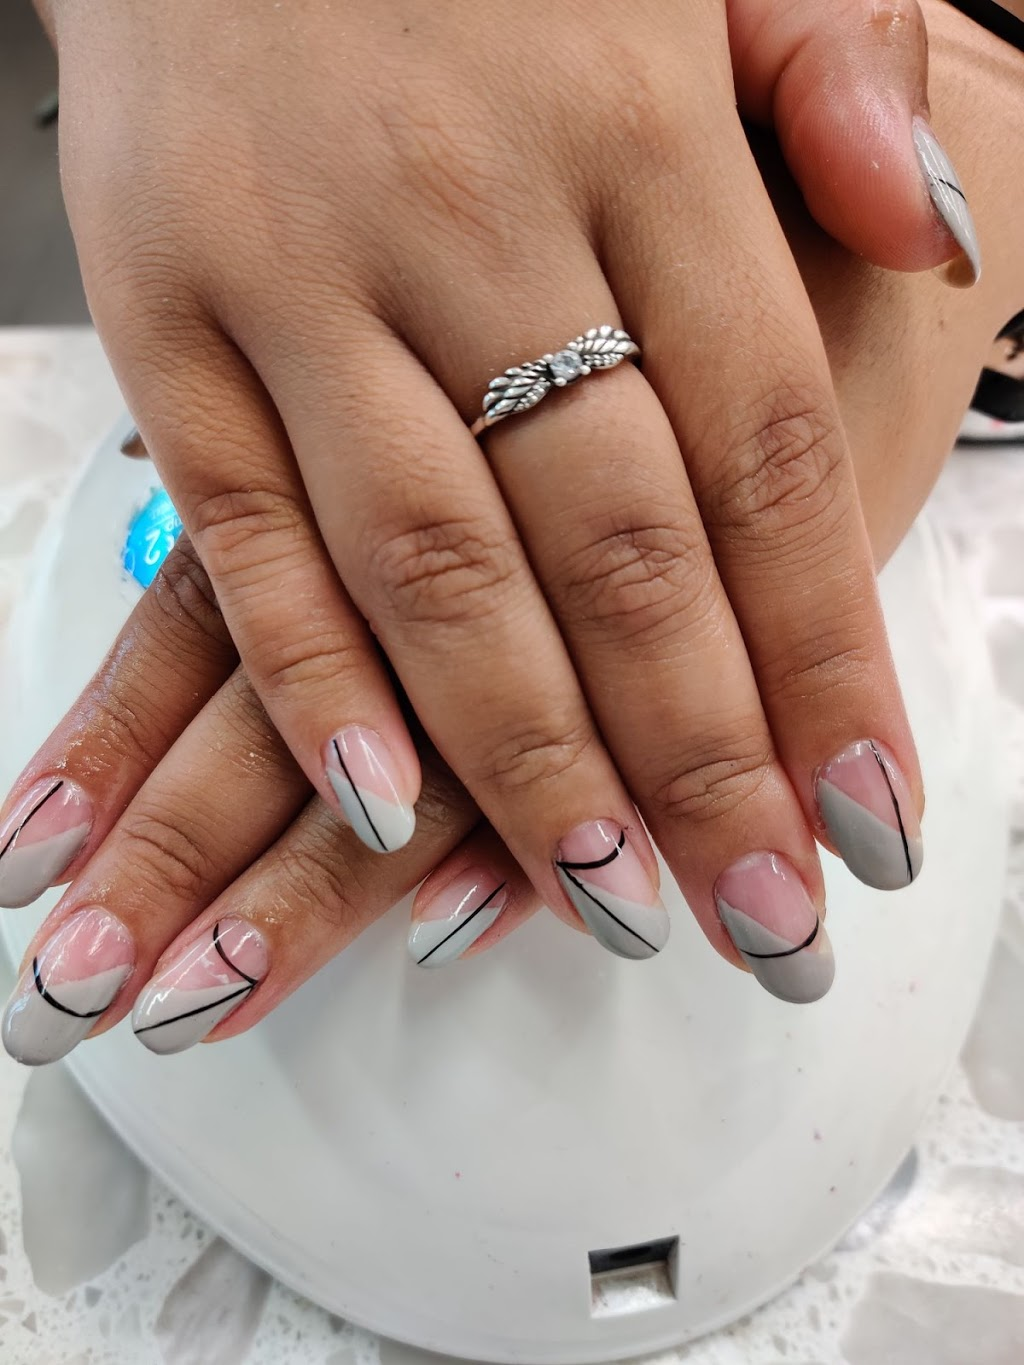 Julias Nails   point of interest   85 Ellesmere Rd #9, Scarborough, ON M1R 4B7, Canada   4163860988 OR +1 416-386-0988